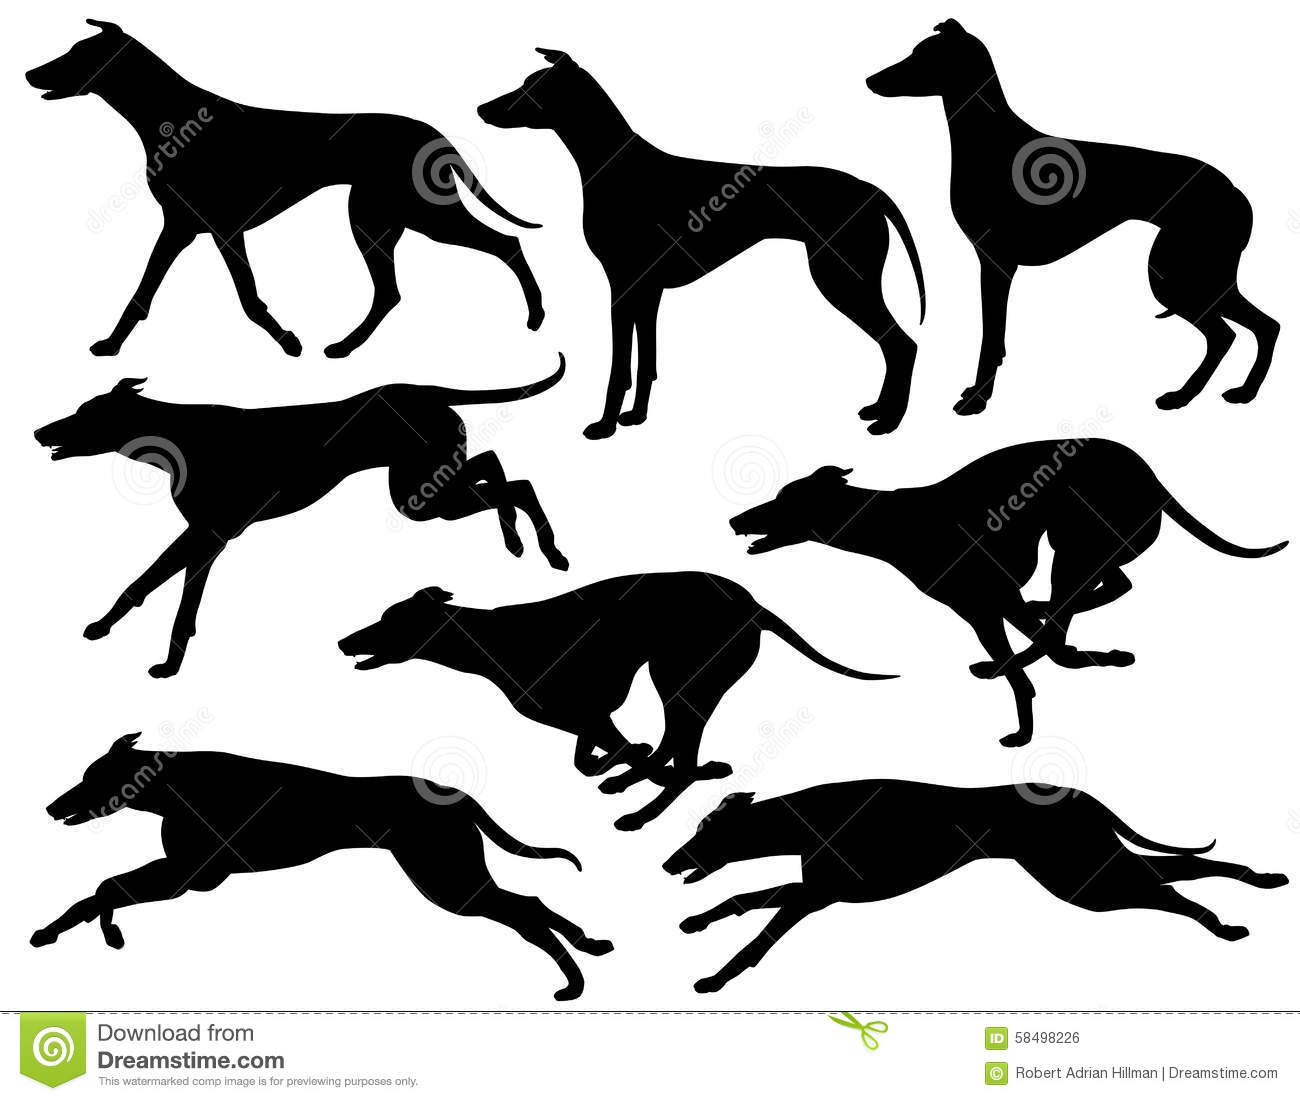 Galgo clipart 20 free Cliparts | Download images on ... (1300 x 1101 Pixel)